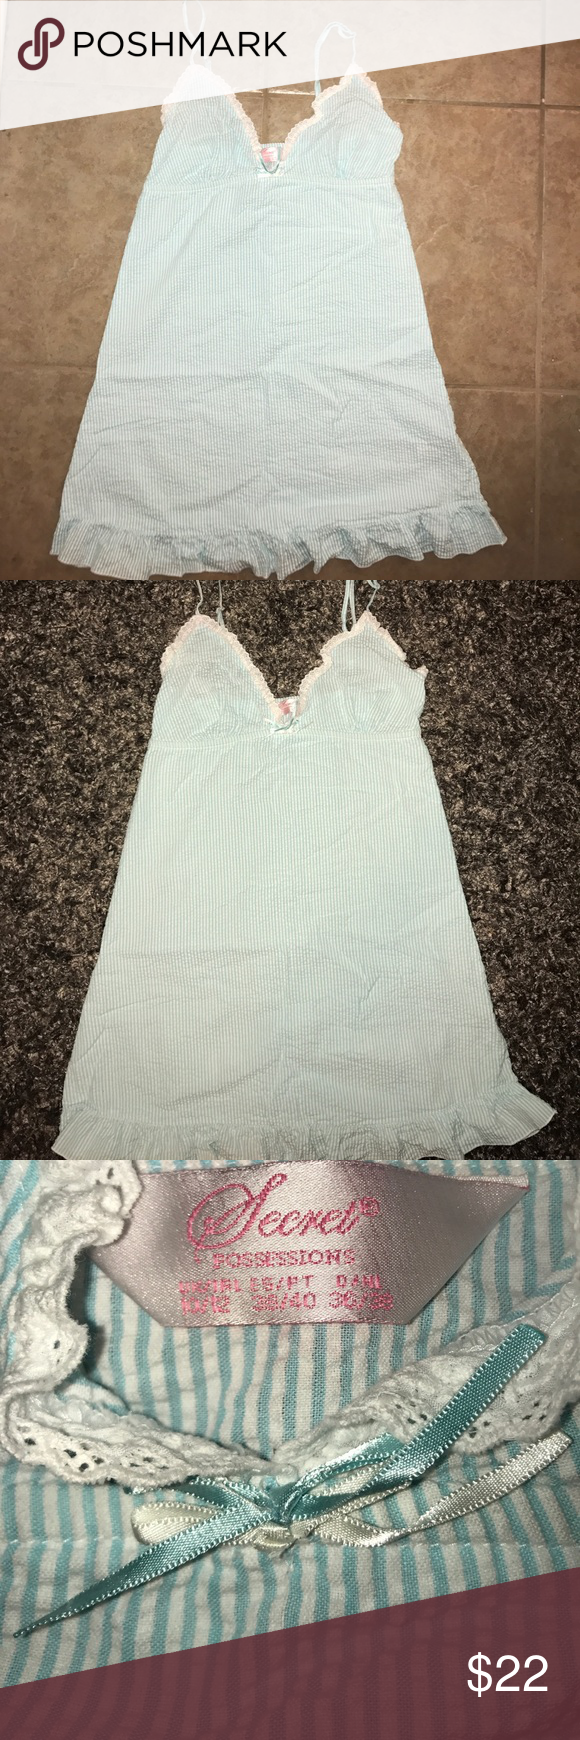 SECRET POSSESSION NIGHT DRESS Cute night dress fits a med bra size 3636 EUC including adjustable straps fun and flirty.IT HAS RUFFLES ...HE LOVES RUFFLES 😍 secret possesions Skirts